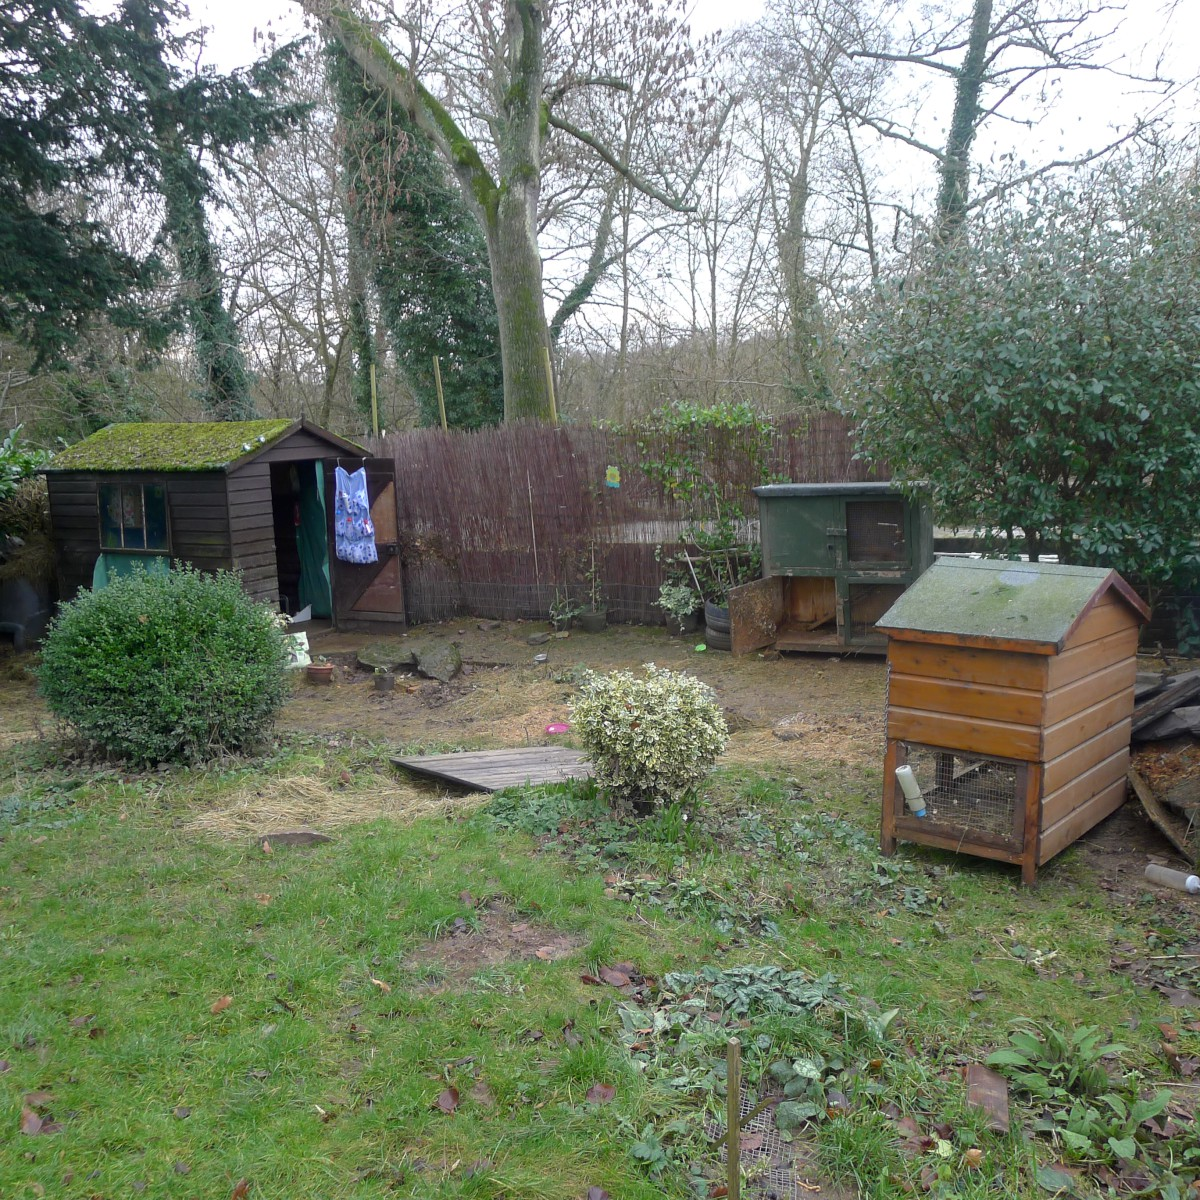 Hutches remain empty after the frantic rescue mission on Christmas Eve